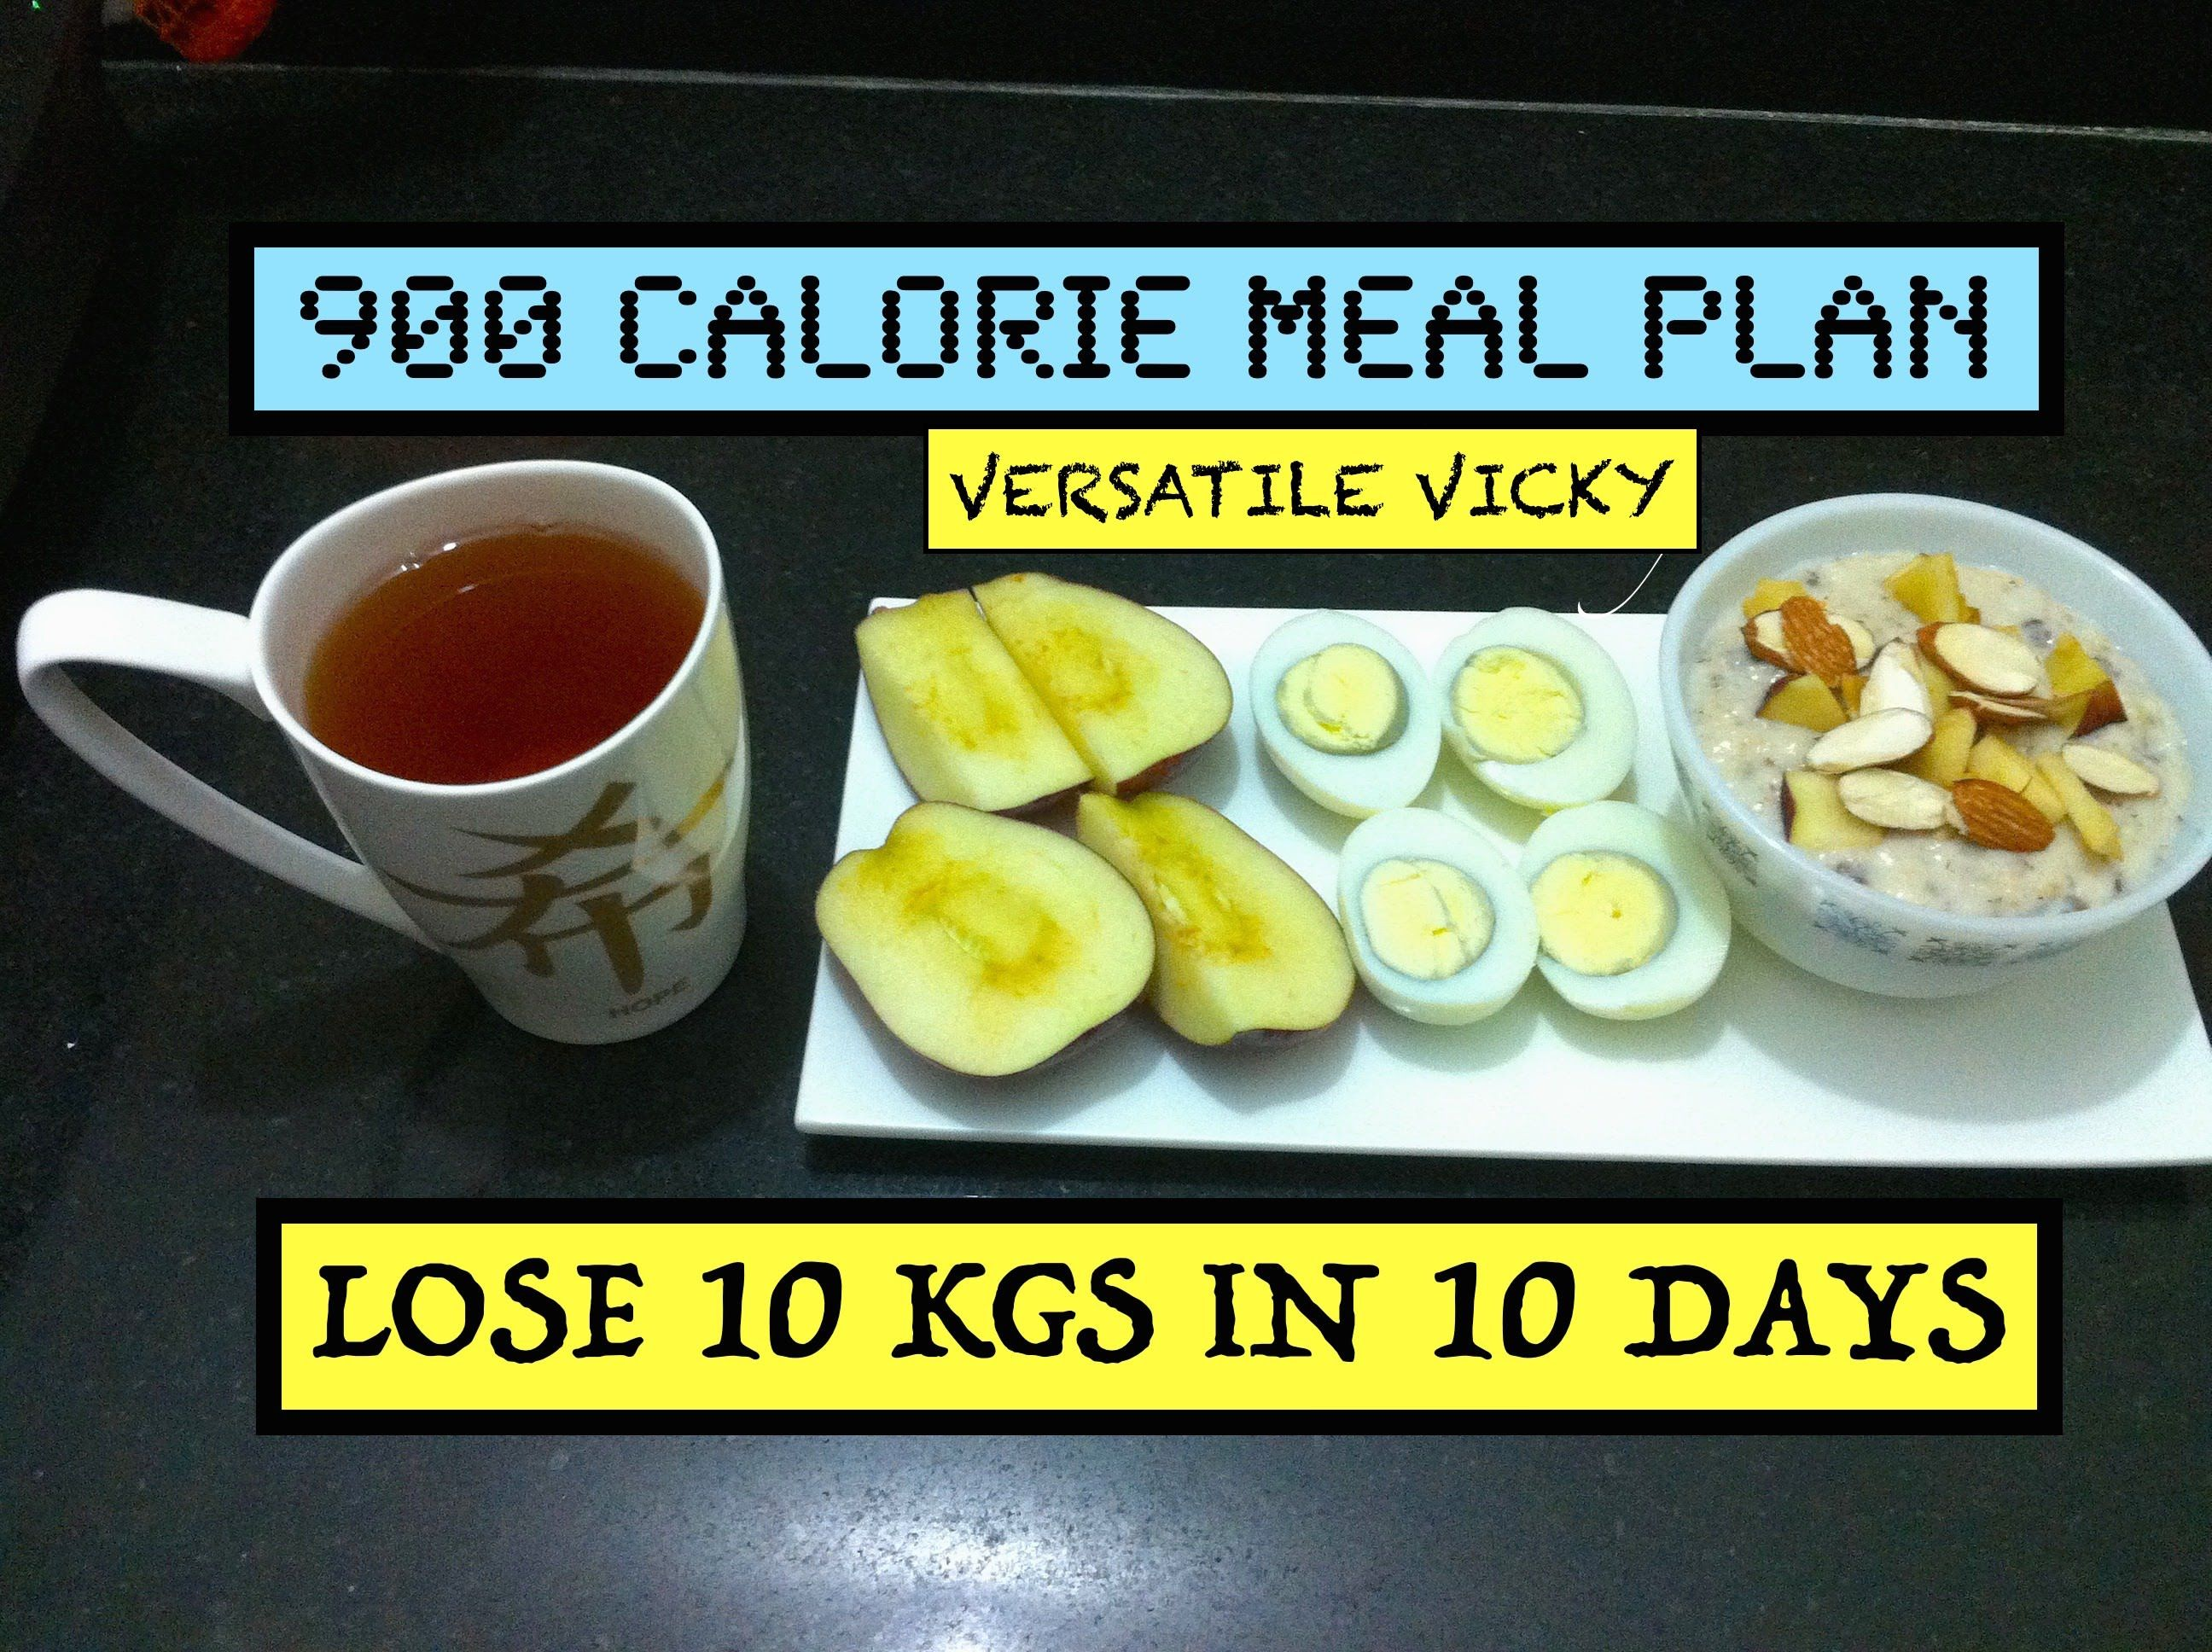 Diet Maggi: egg diet for quick weight loss. Maggi diet menu, reviews and recommendations 76